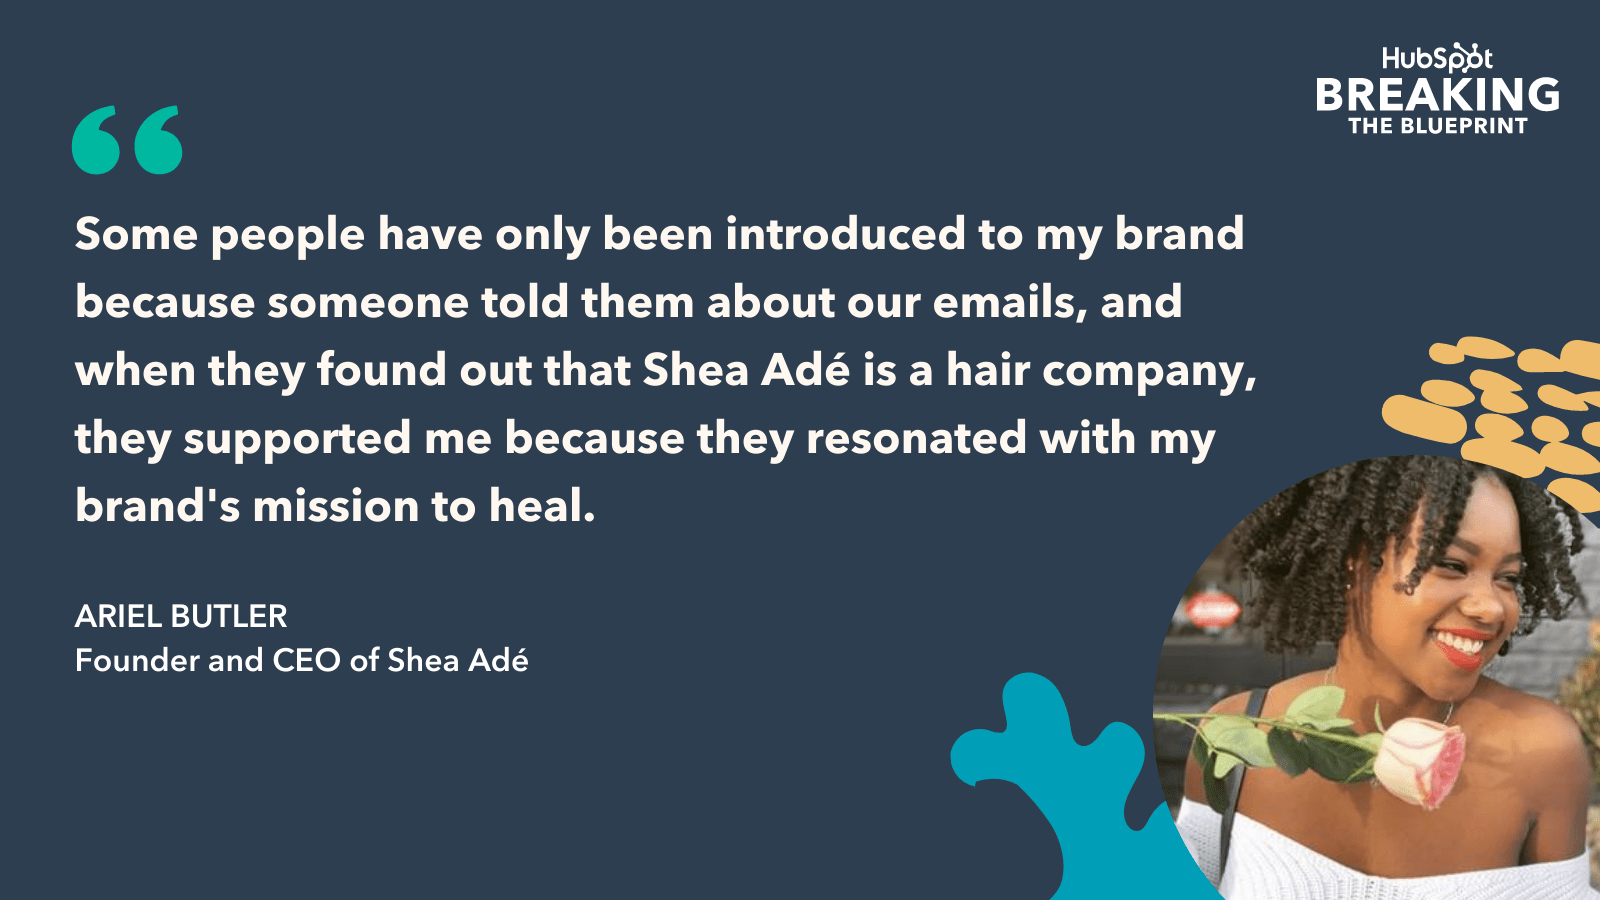 Email marketing strategy from Ariel Butler CEO of Shea Ade